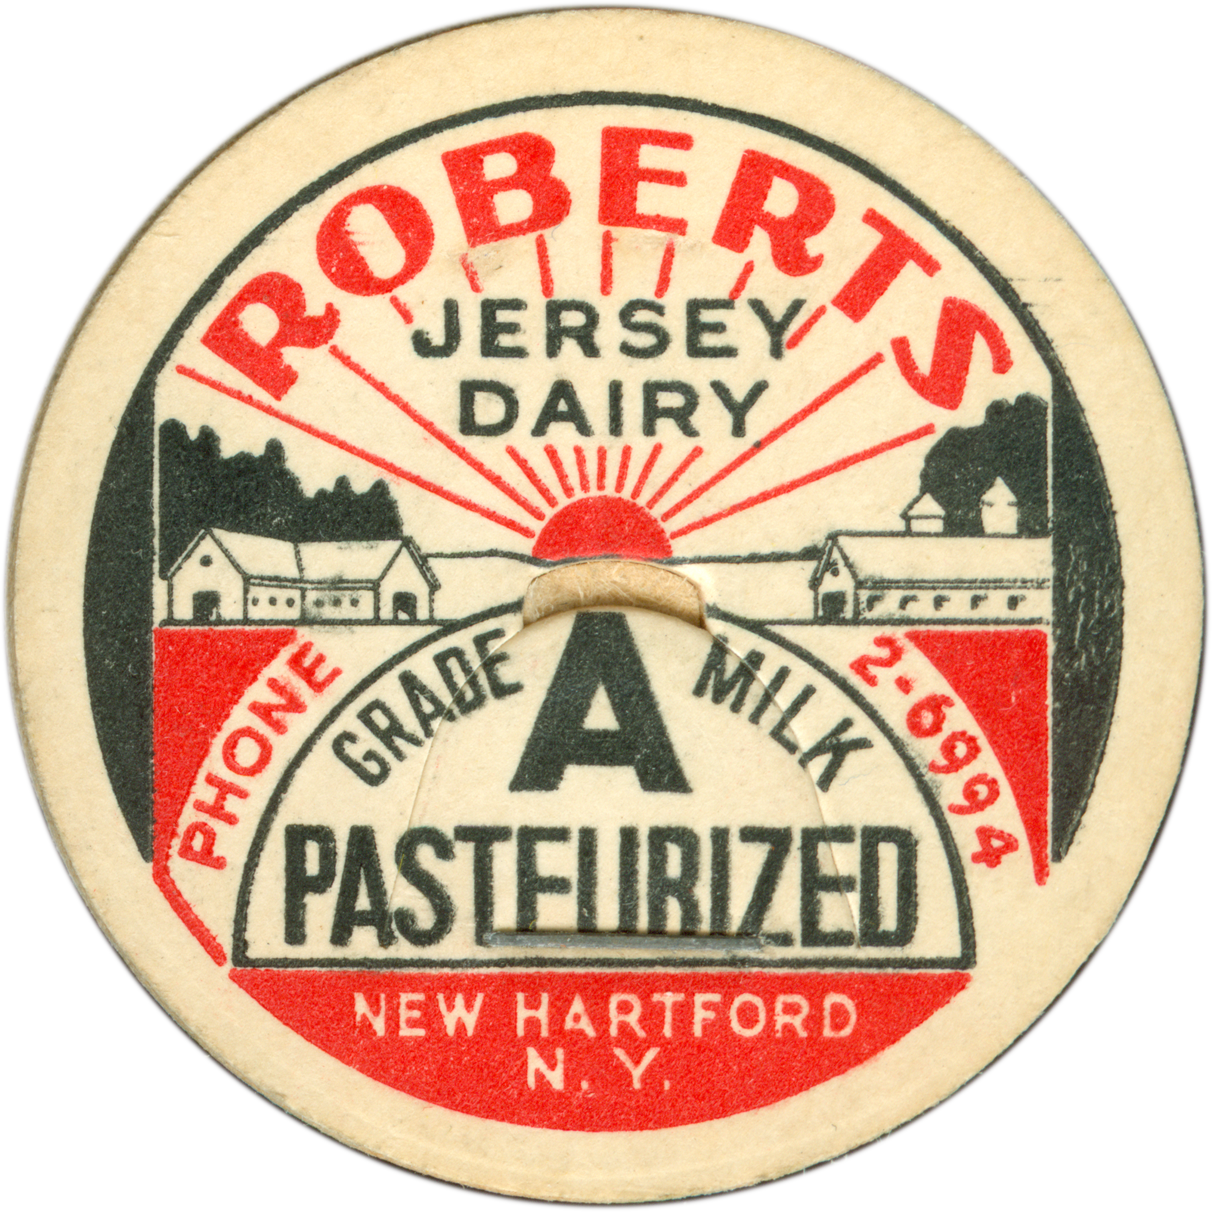 VernacularCircles_0001s_0023_Roberts-Jersey-Dairy---Grade-A-Milk-Pasterurized.png